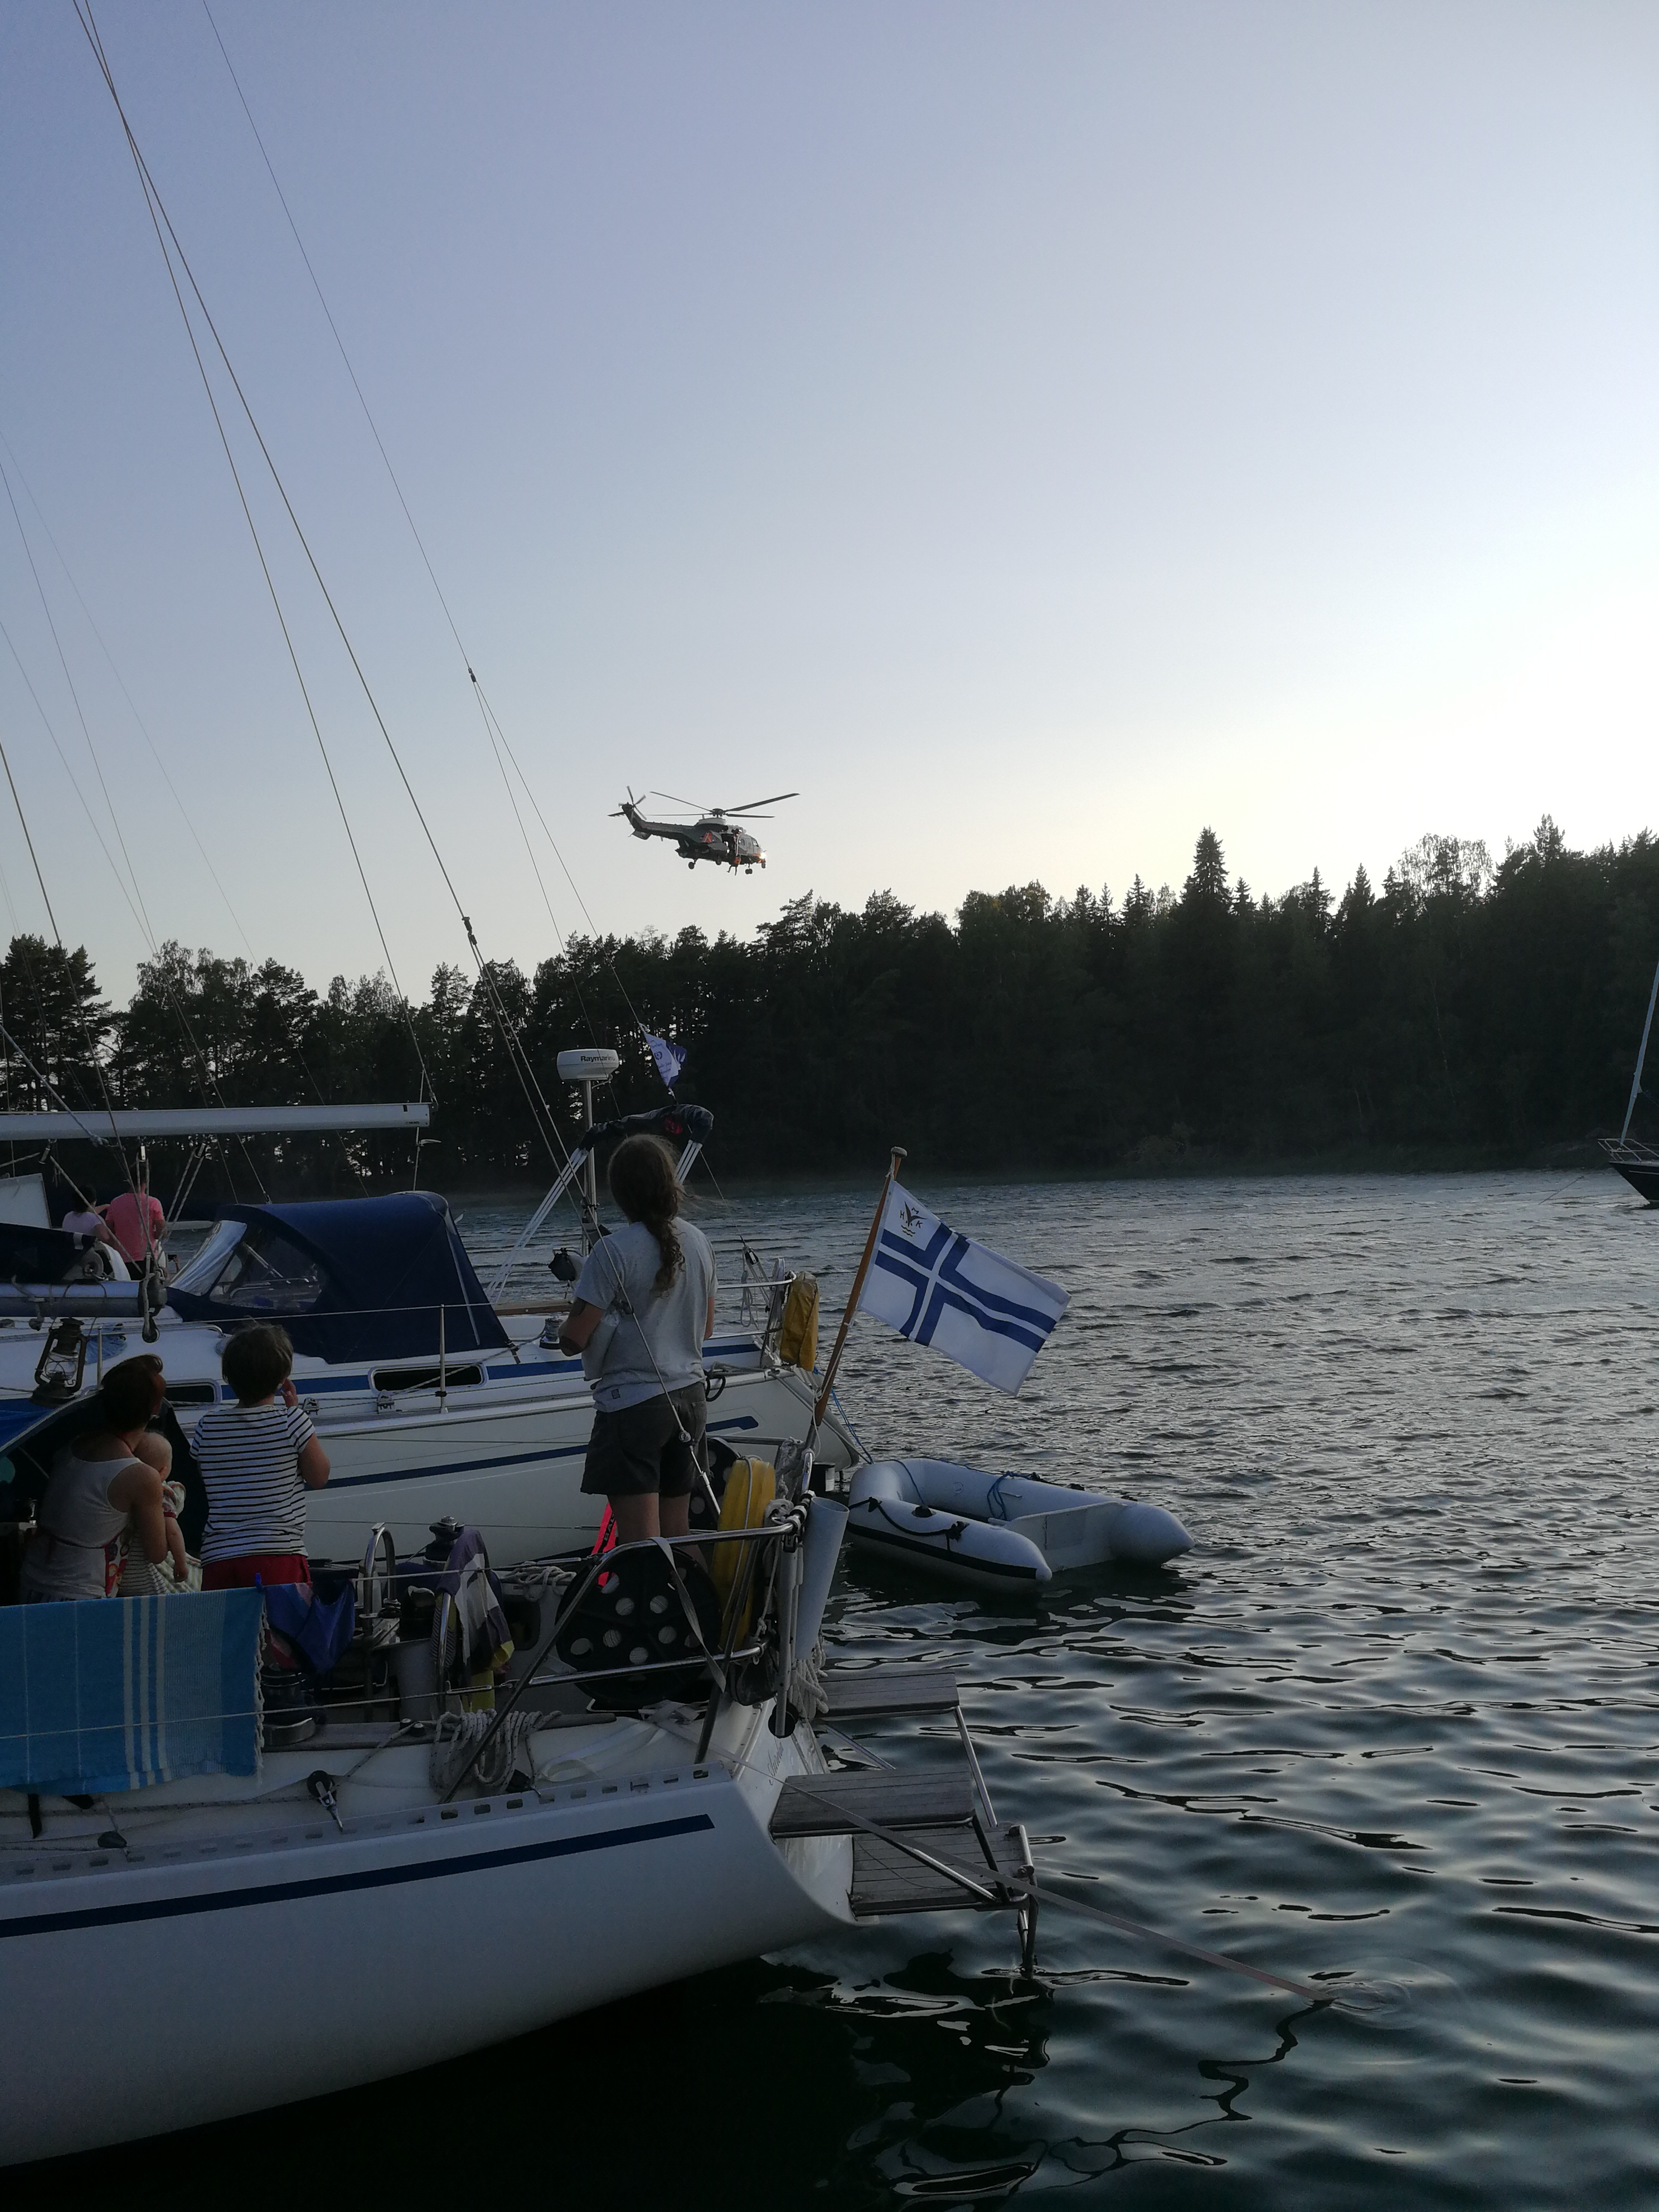 Finnish Coast Guard in Action